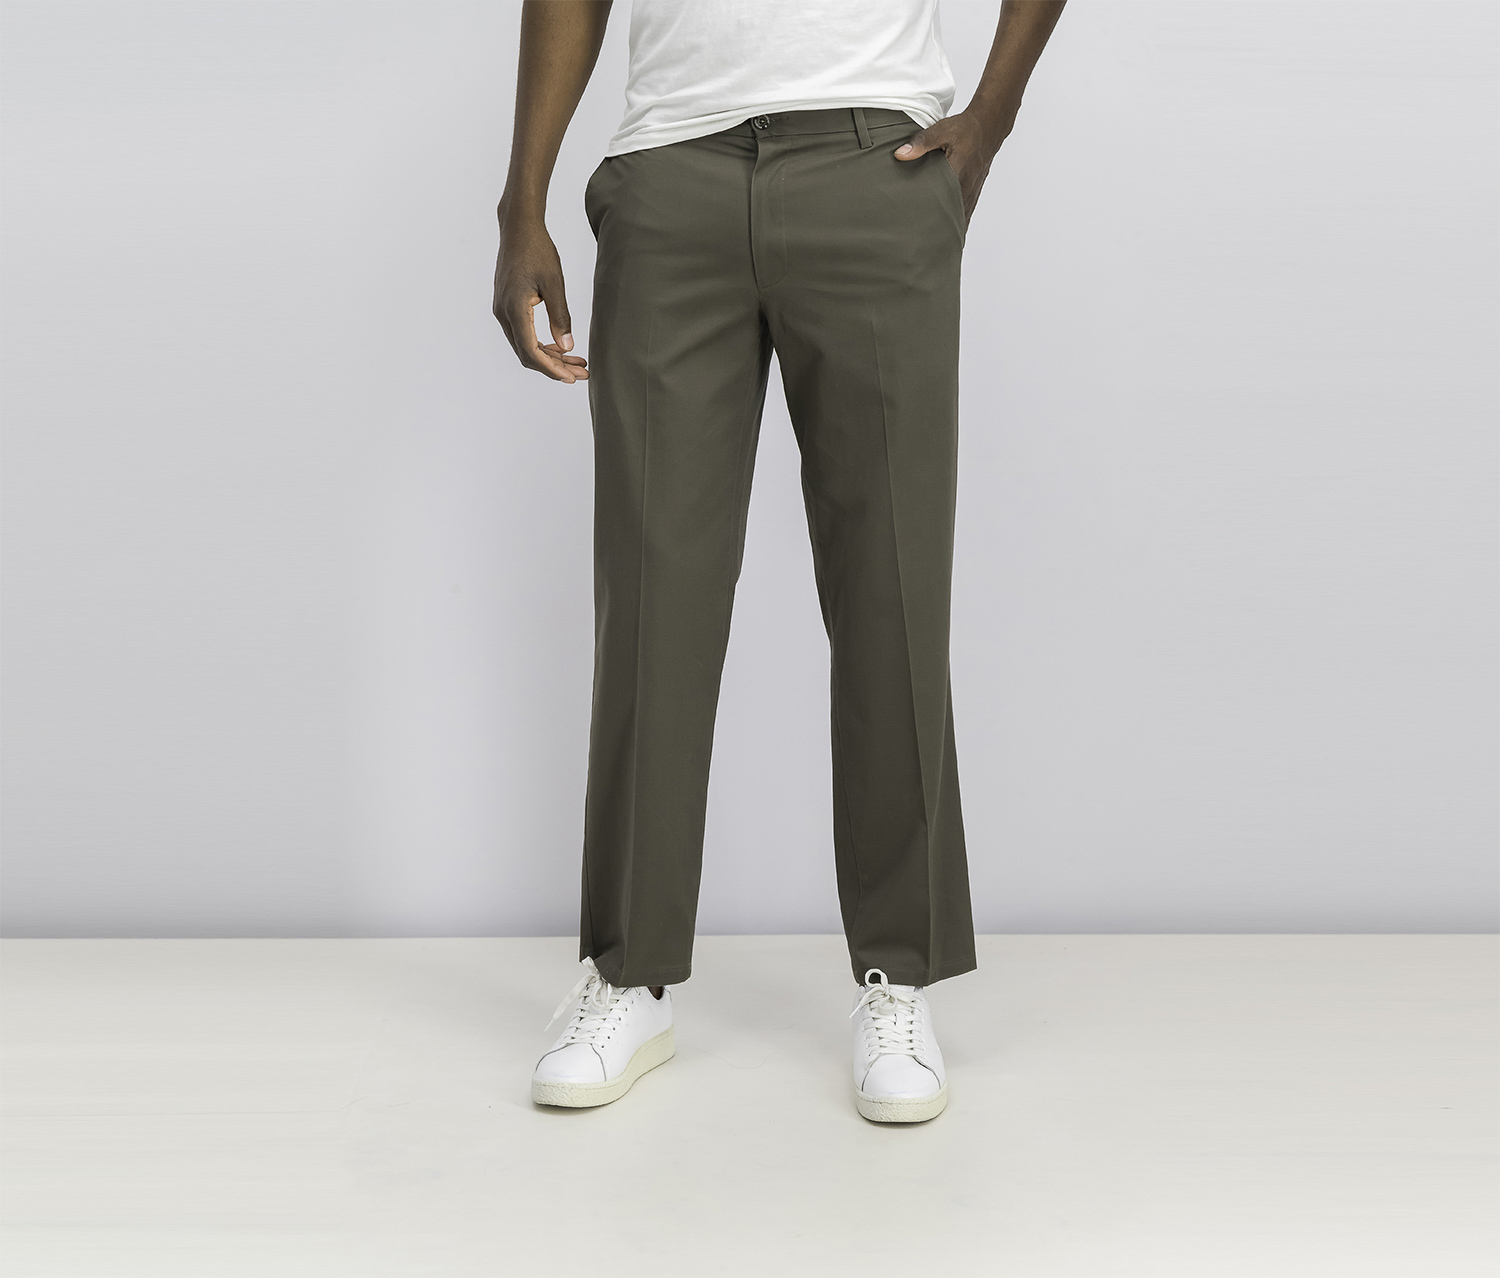 Men's Straight Fit Signature Pants, Dark Pebble